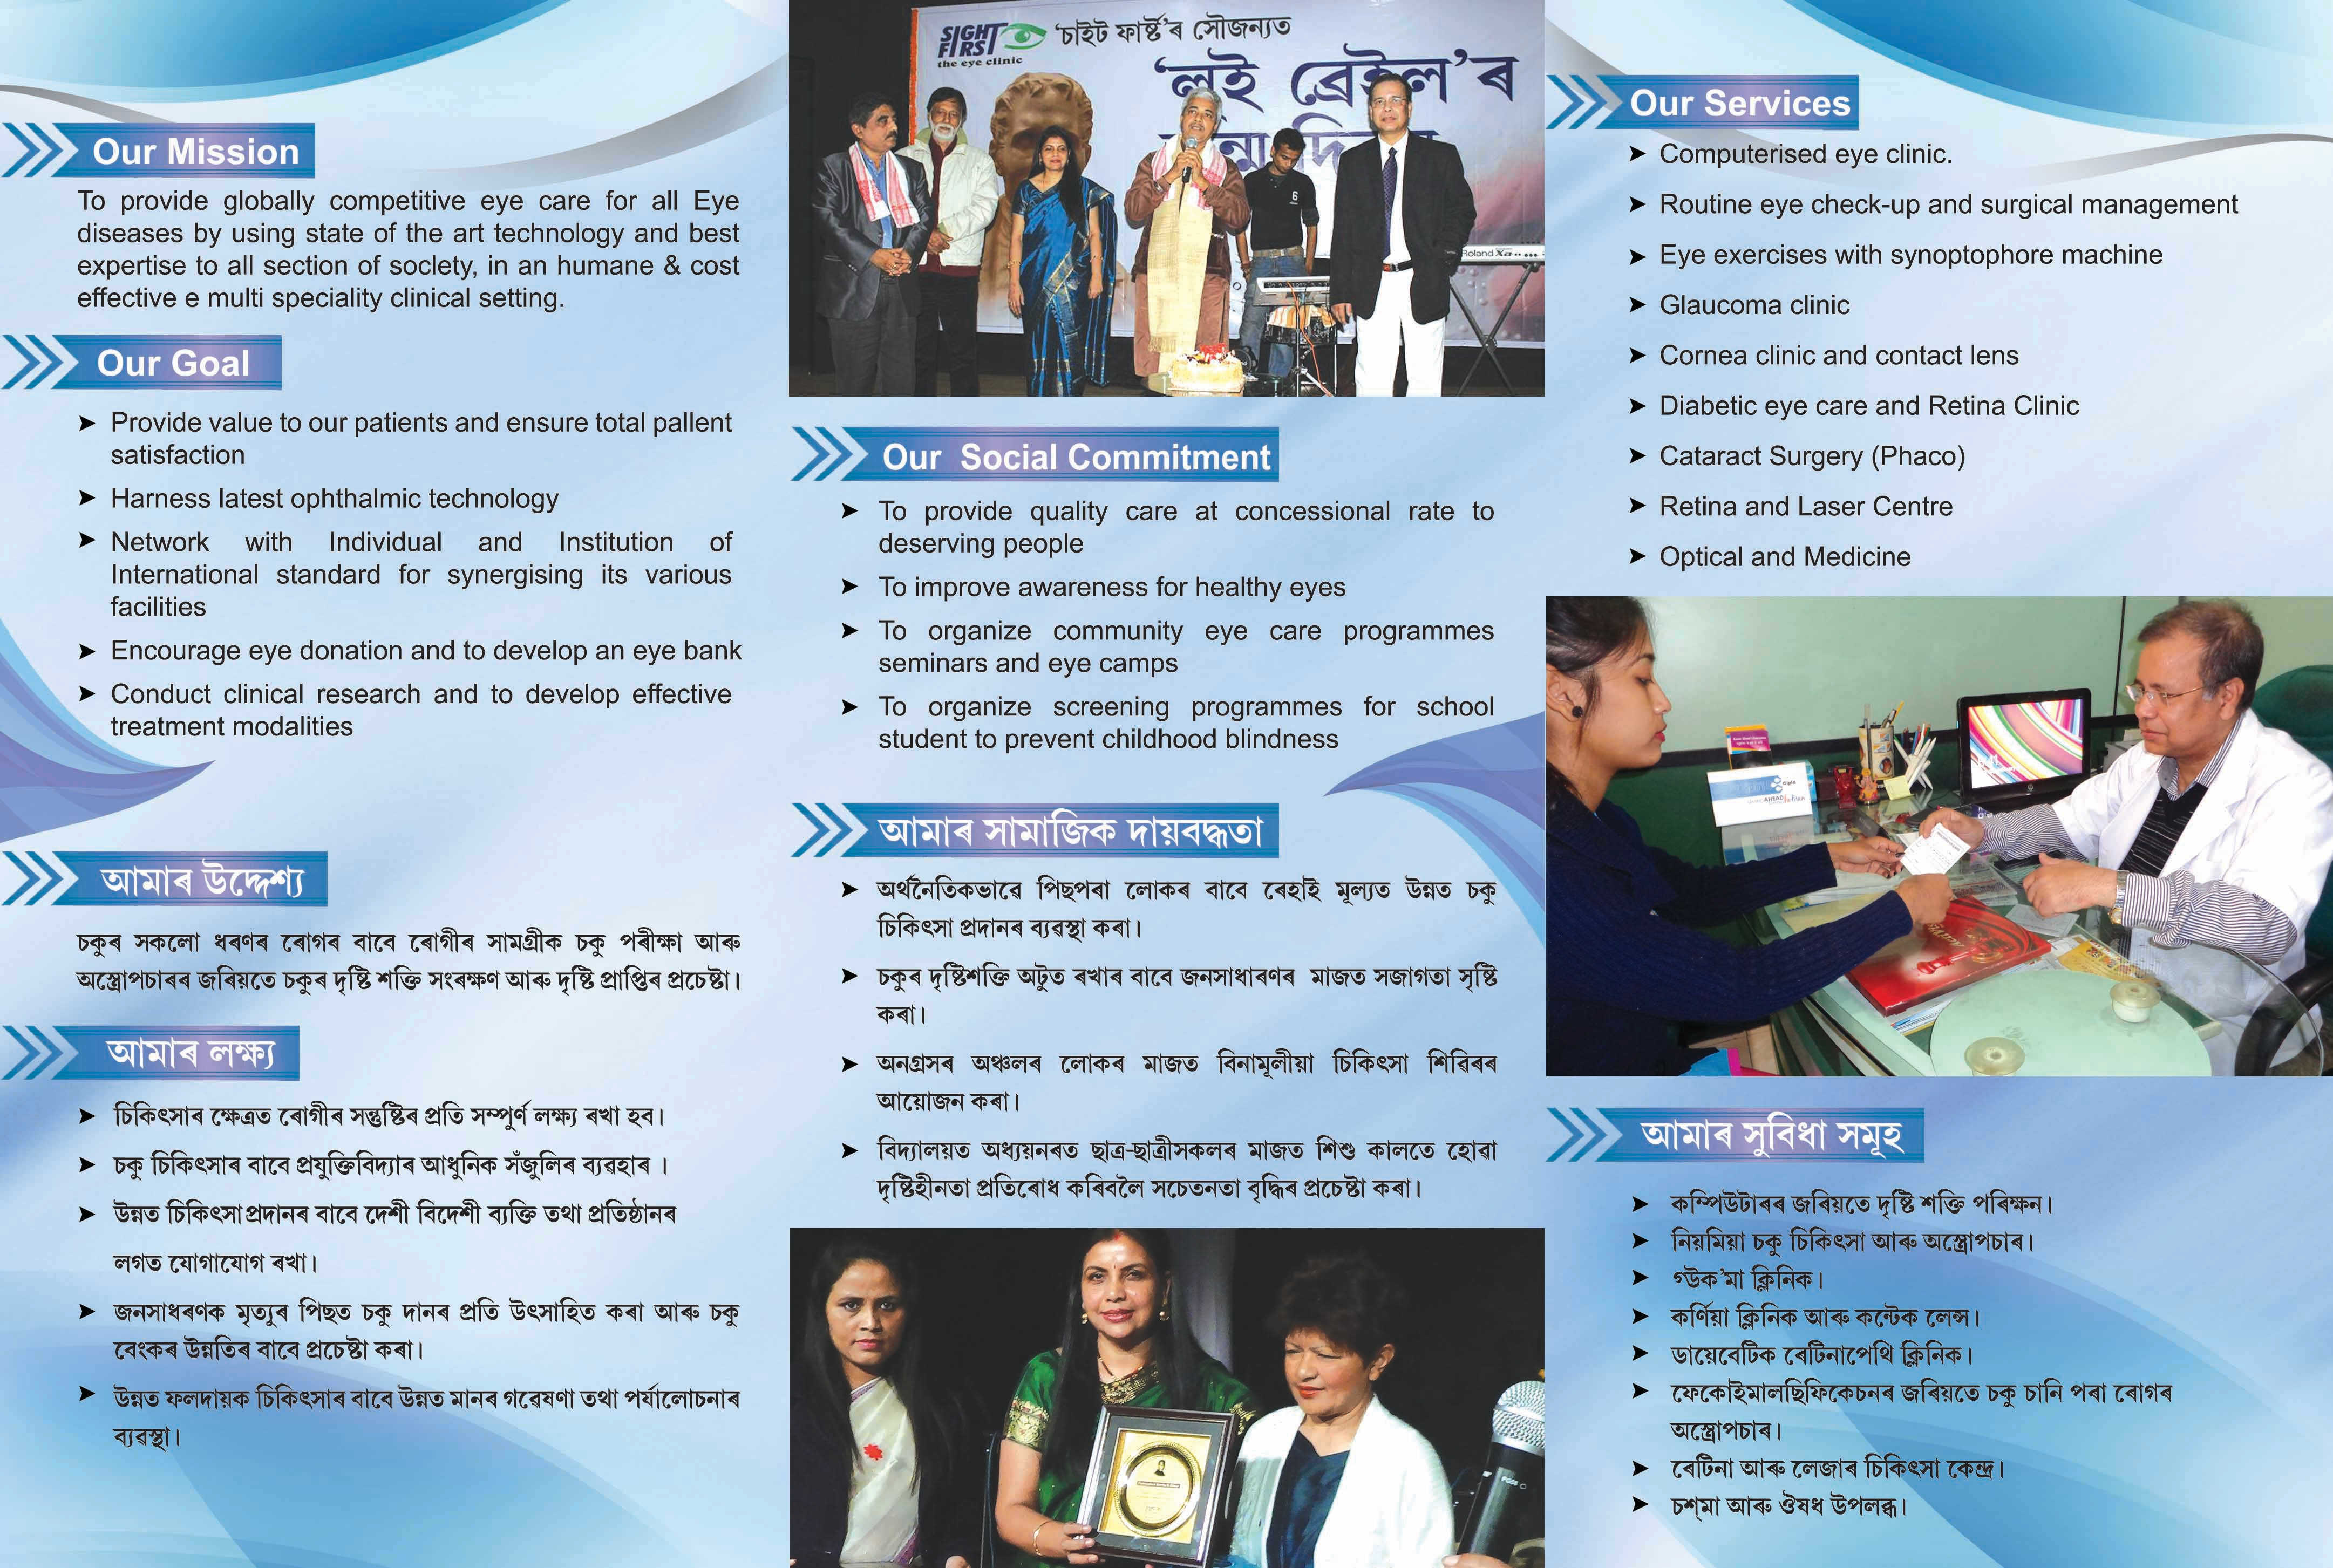 LASIK Surgery Treatment Doctors in Guwahati - View Cost, Book